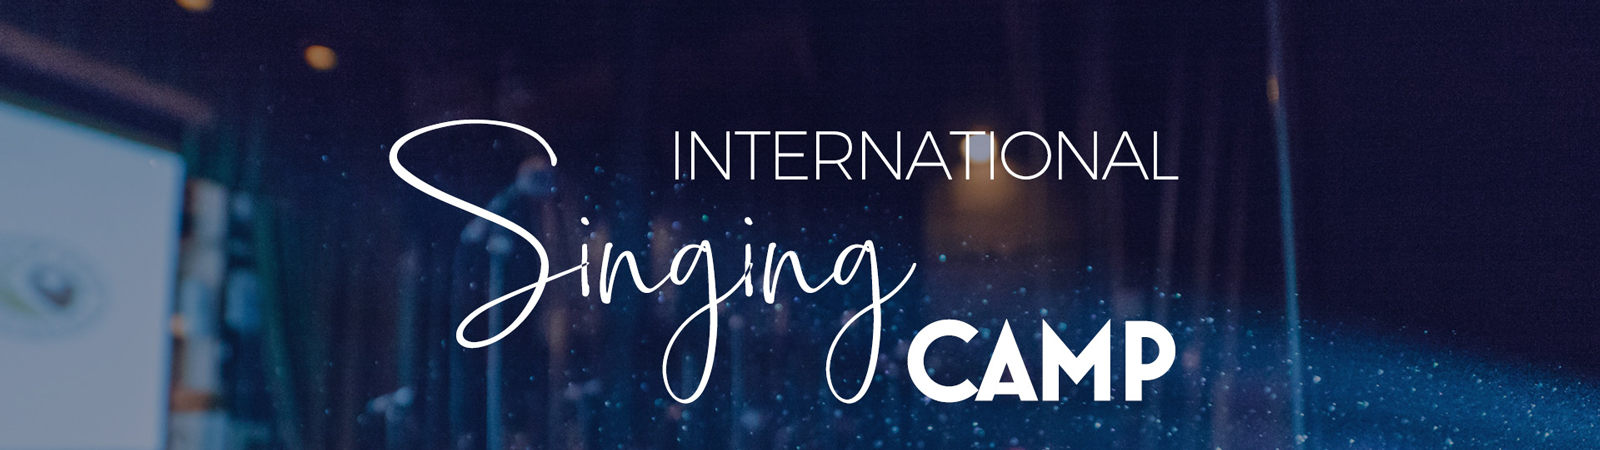 International Singing Camp